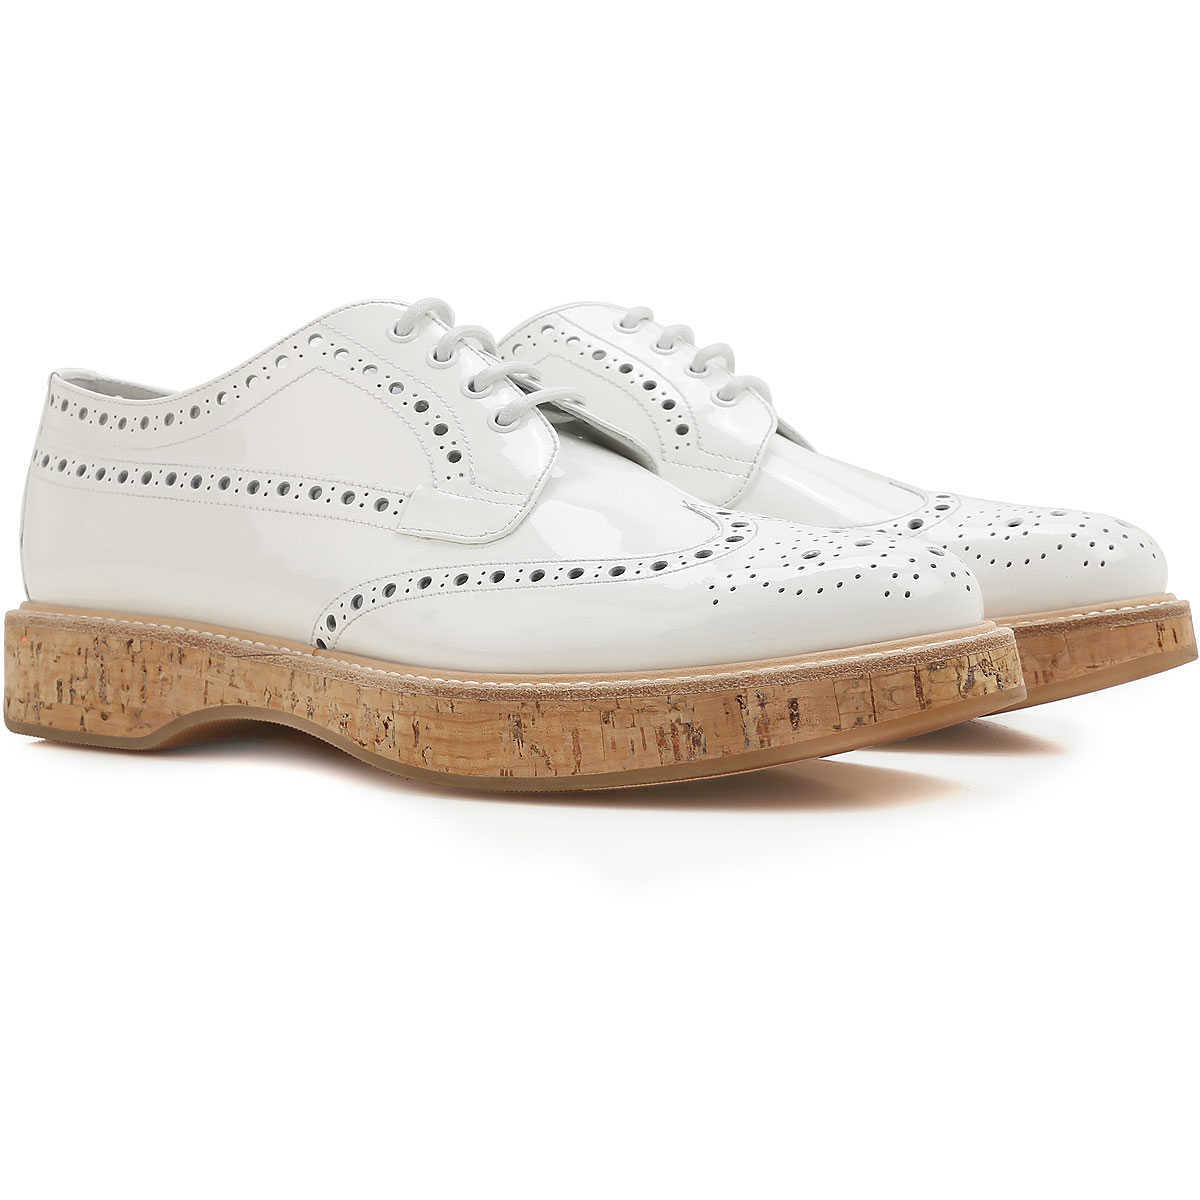 Church's Oxford Lace up Shoes for Women in Outlet White Canada - GOOFASH - Womens LEATHER SHOES